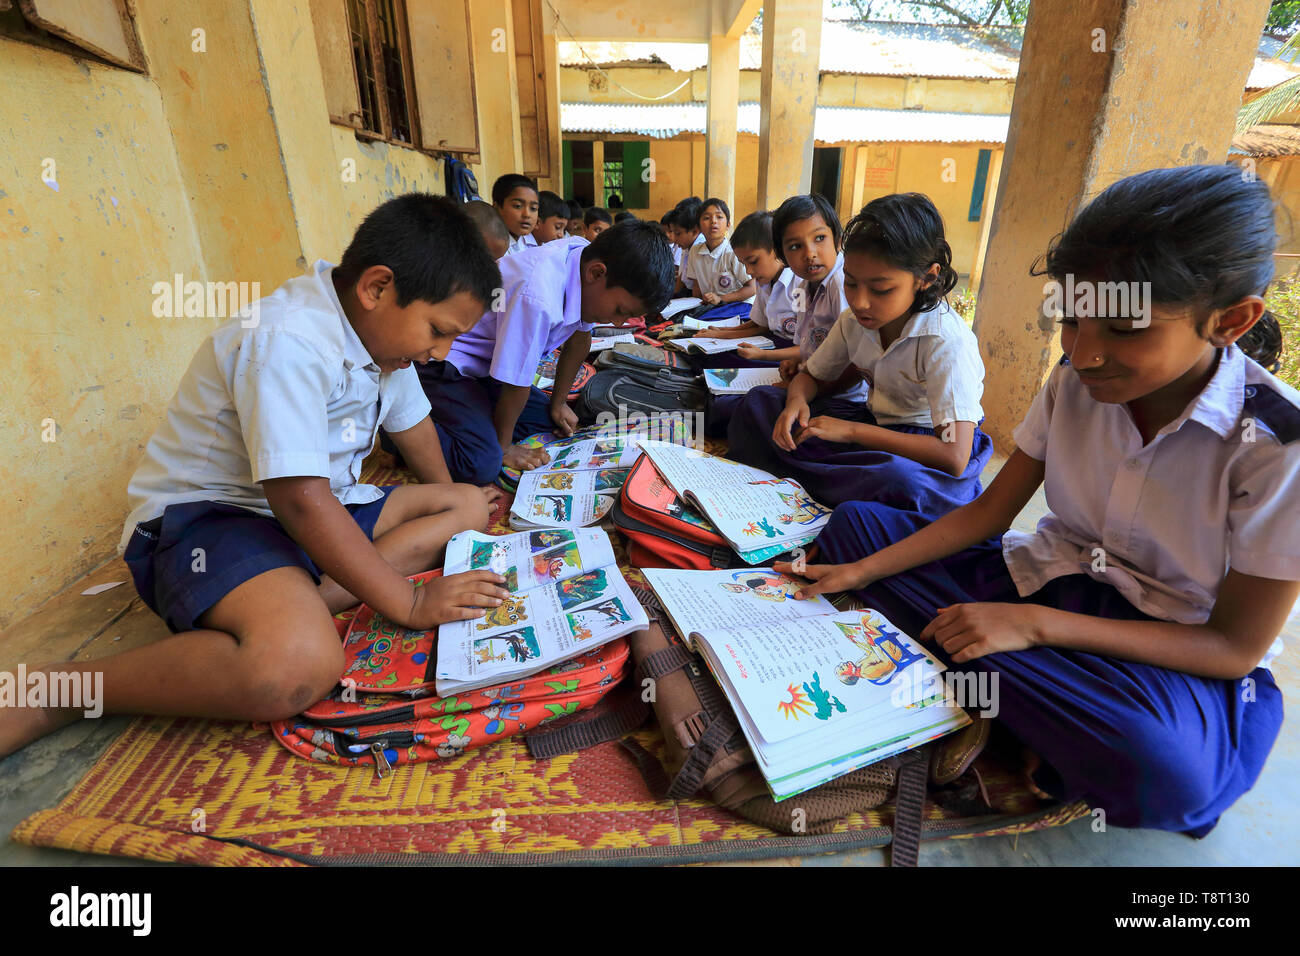 Students of a primary school attend classes on the verandah because of the dilapidated condition of their classrooms. Narsingdi, Bangladesh - Stock Image